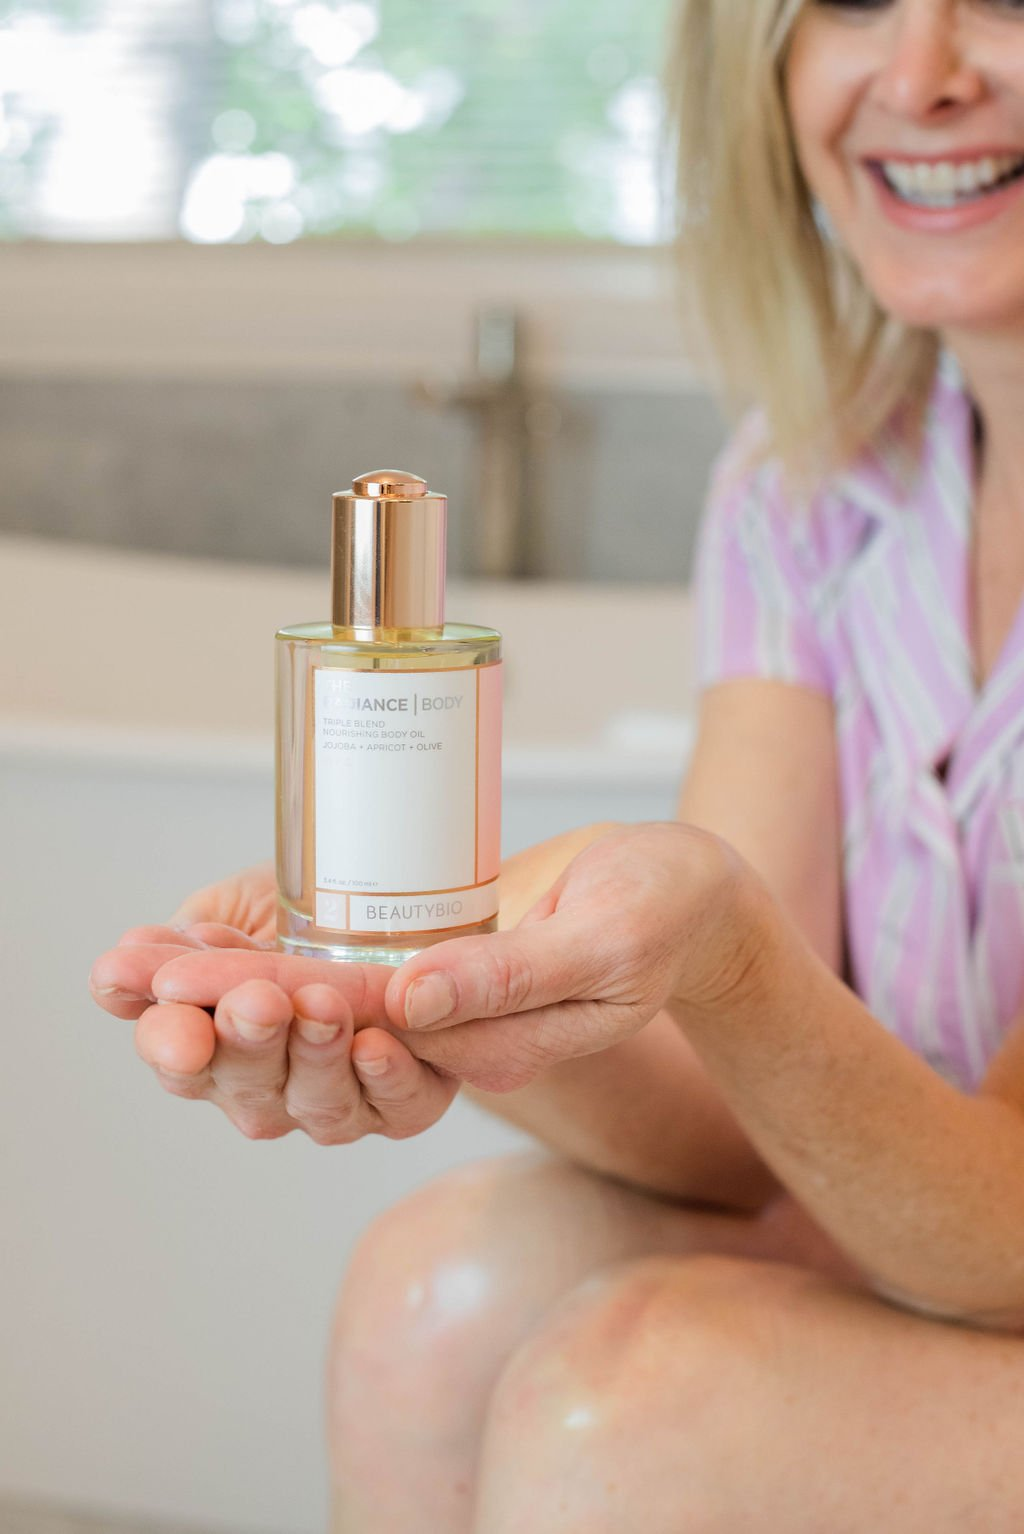 Beauty Bio Radiance Body Oil review featured by top US beauty blogger, Tanya Foster